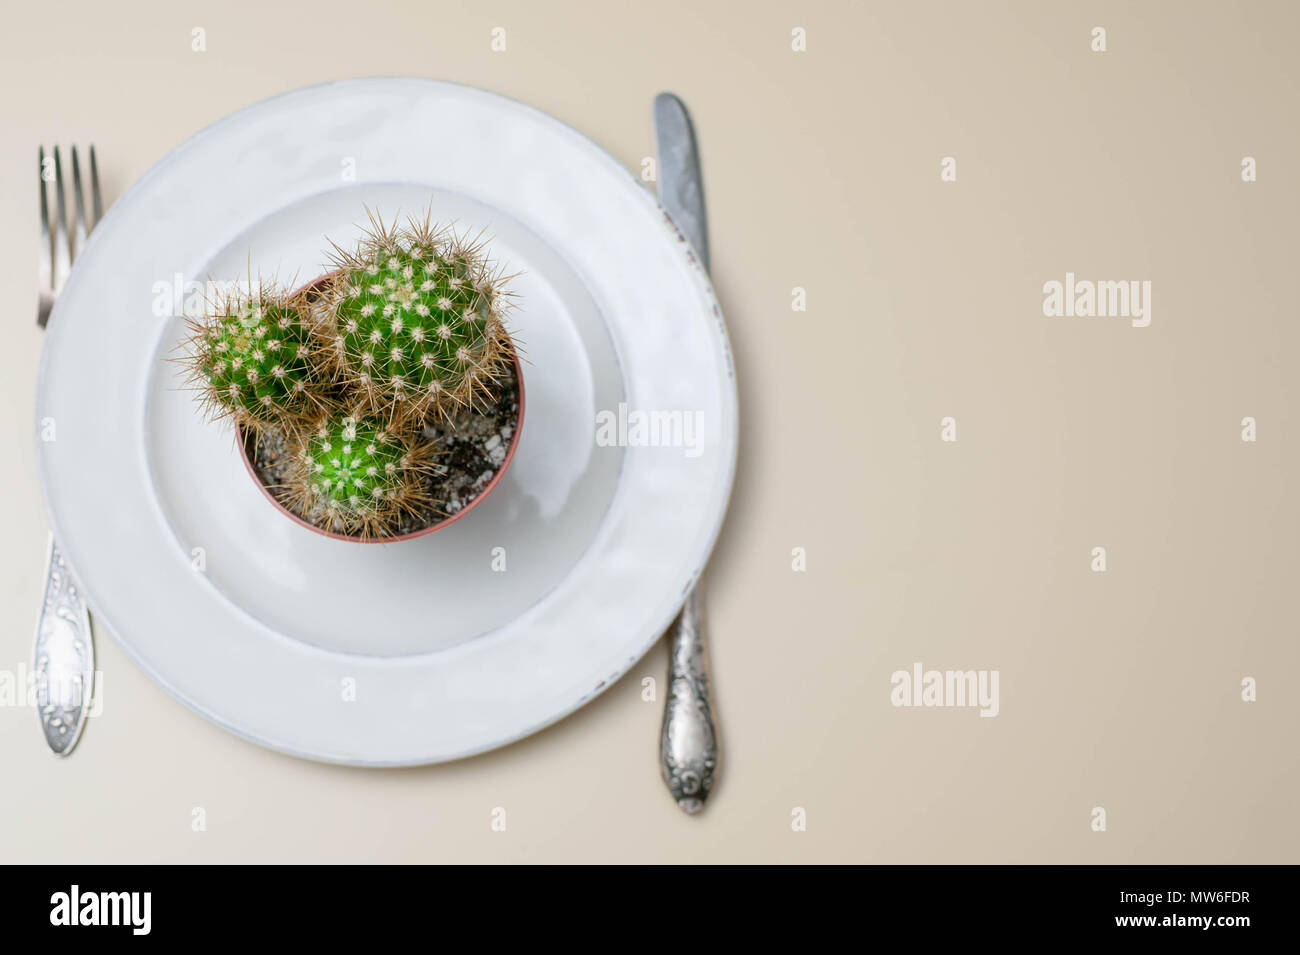 Unhealthy food concept. Heartburn, gastritis, an ulcer from harmful food. Cactus on a plate on a light background. - Stock Image